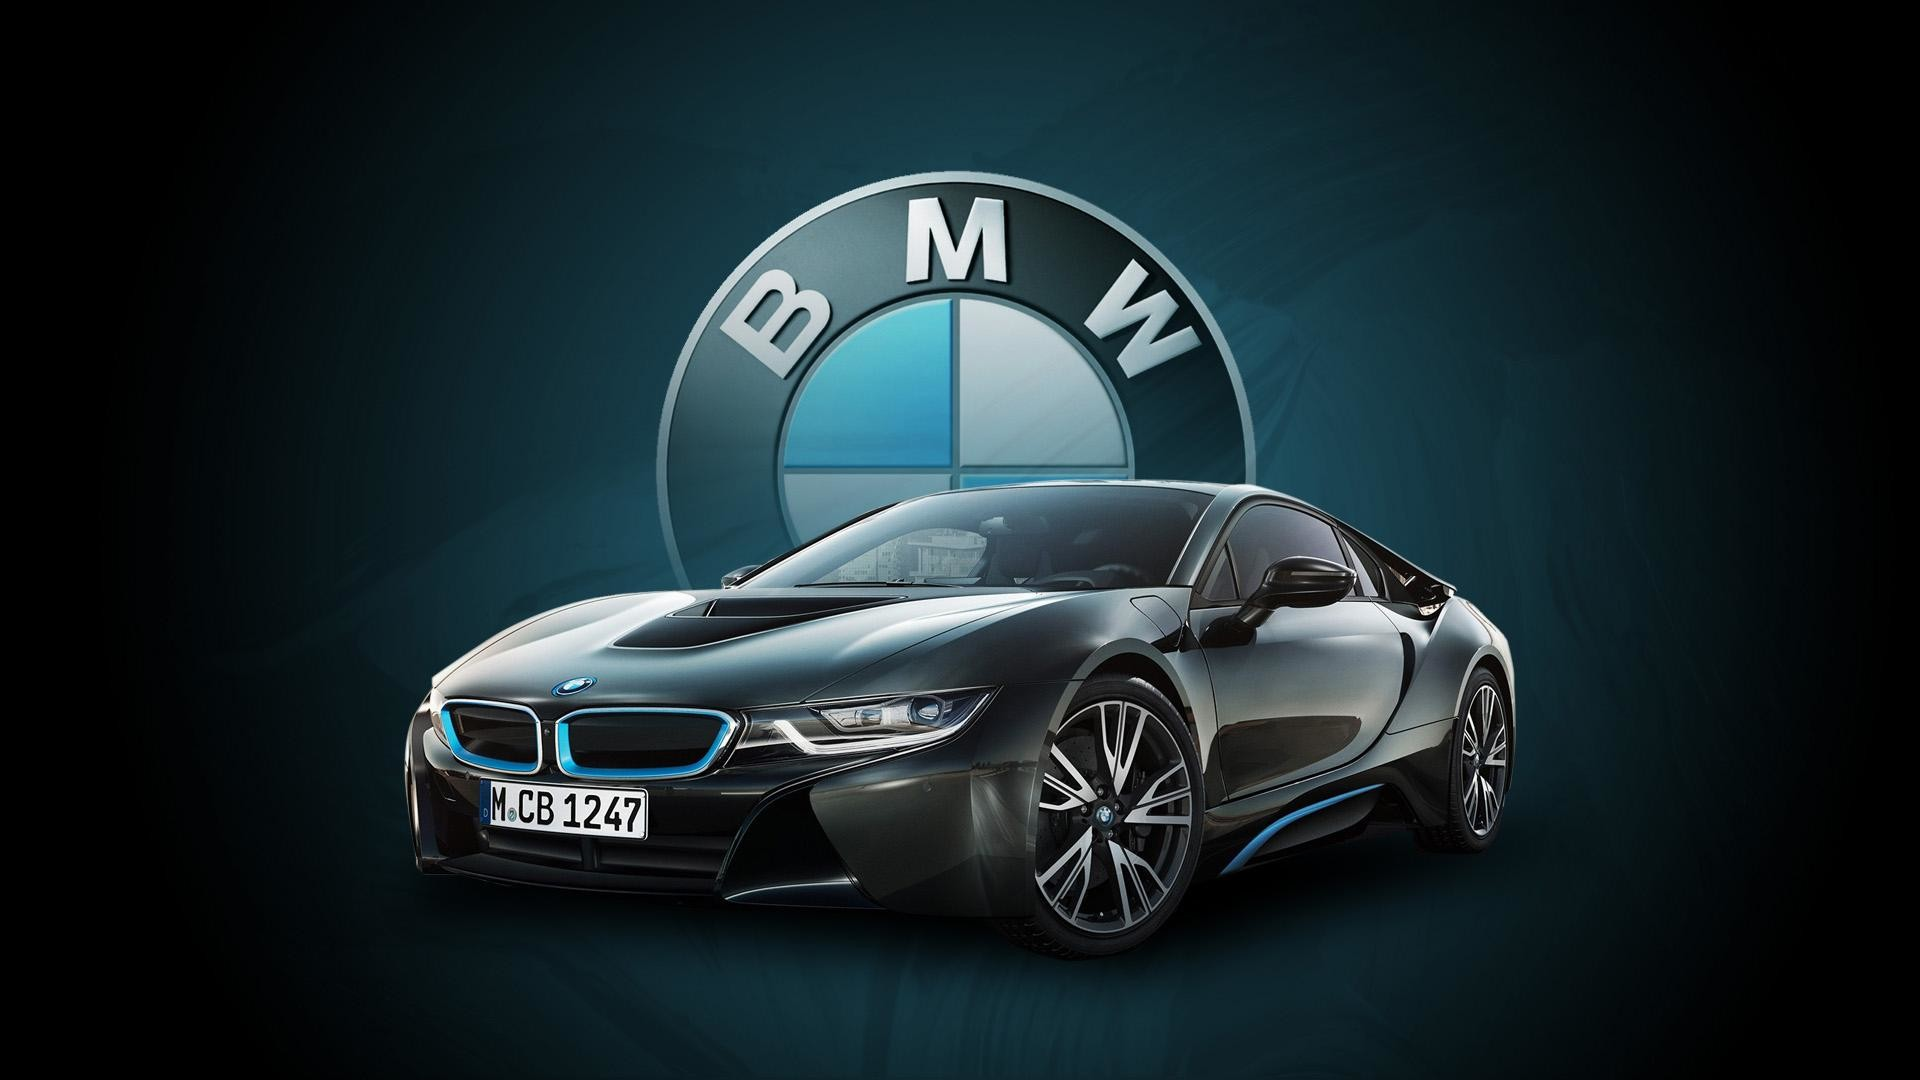 Lovely 1920x1080 Wallpaper.wiki Bmw I8 Pictures PIC WPC008870